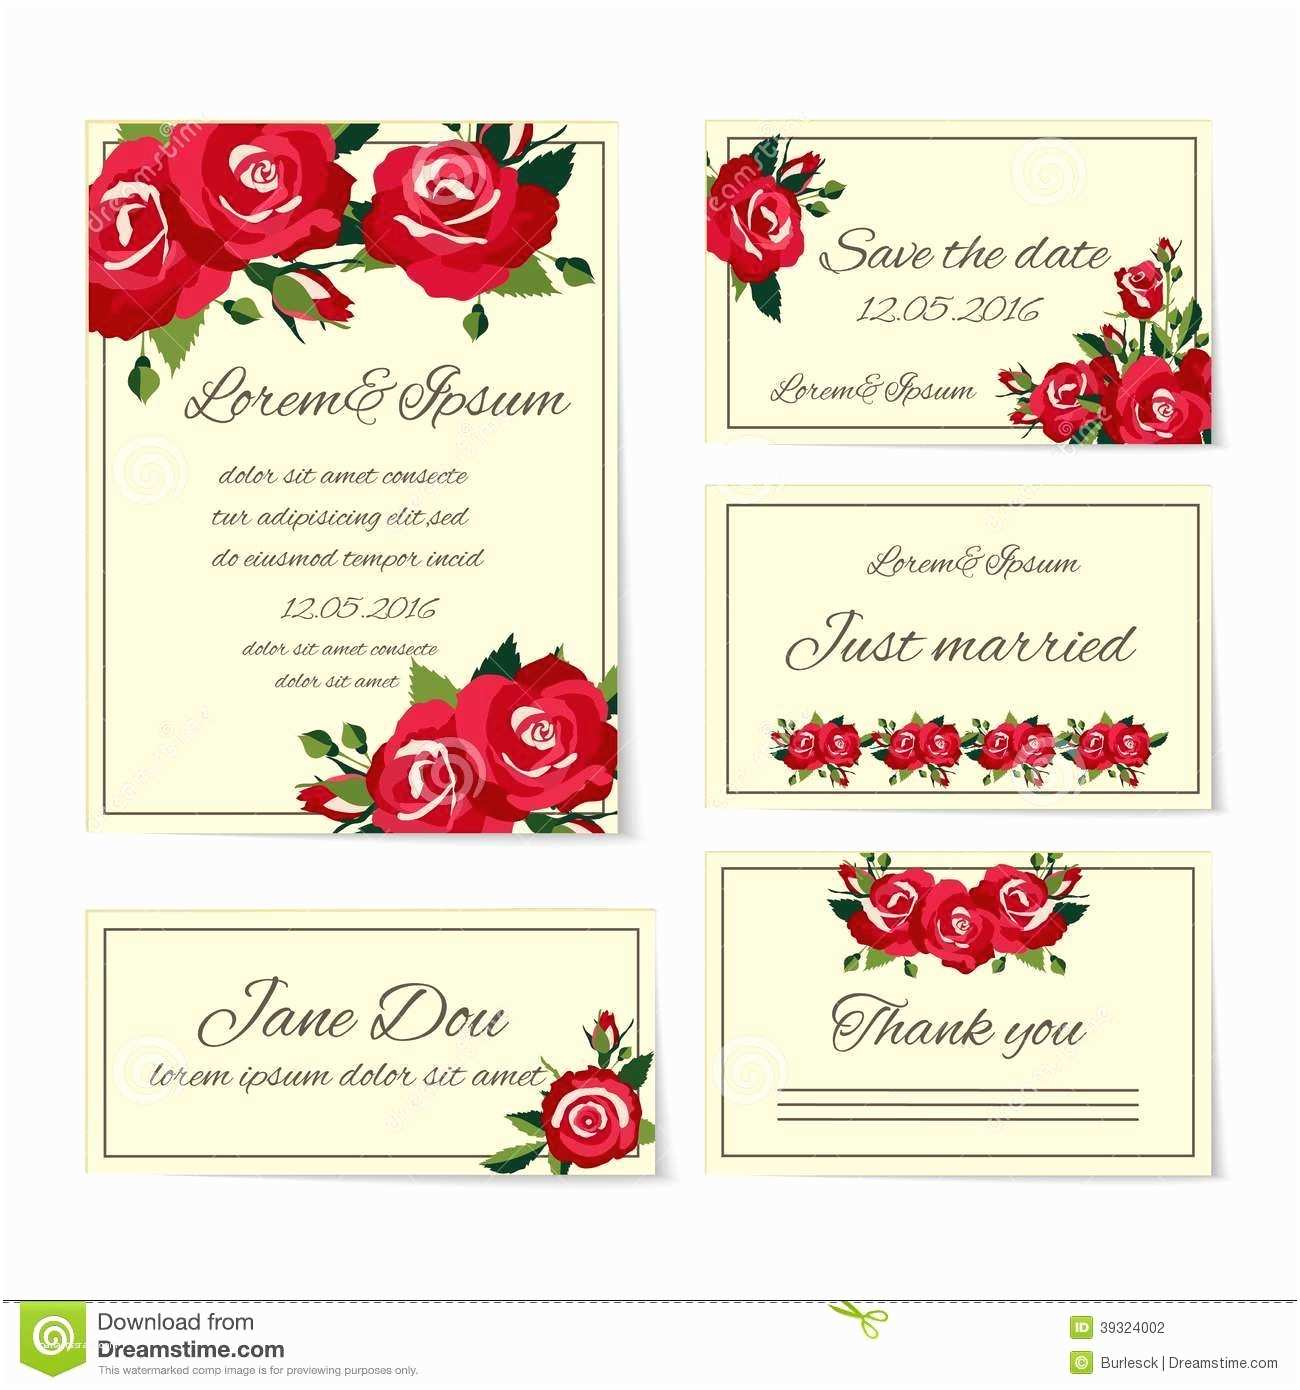 Rose Wedding Invitations Red Roses Wedding Invitation Templates Yaseen for